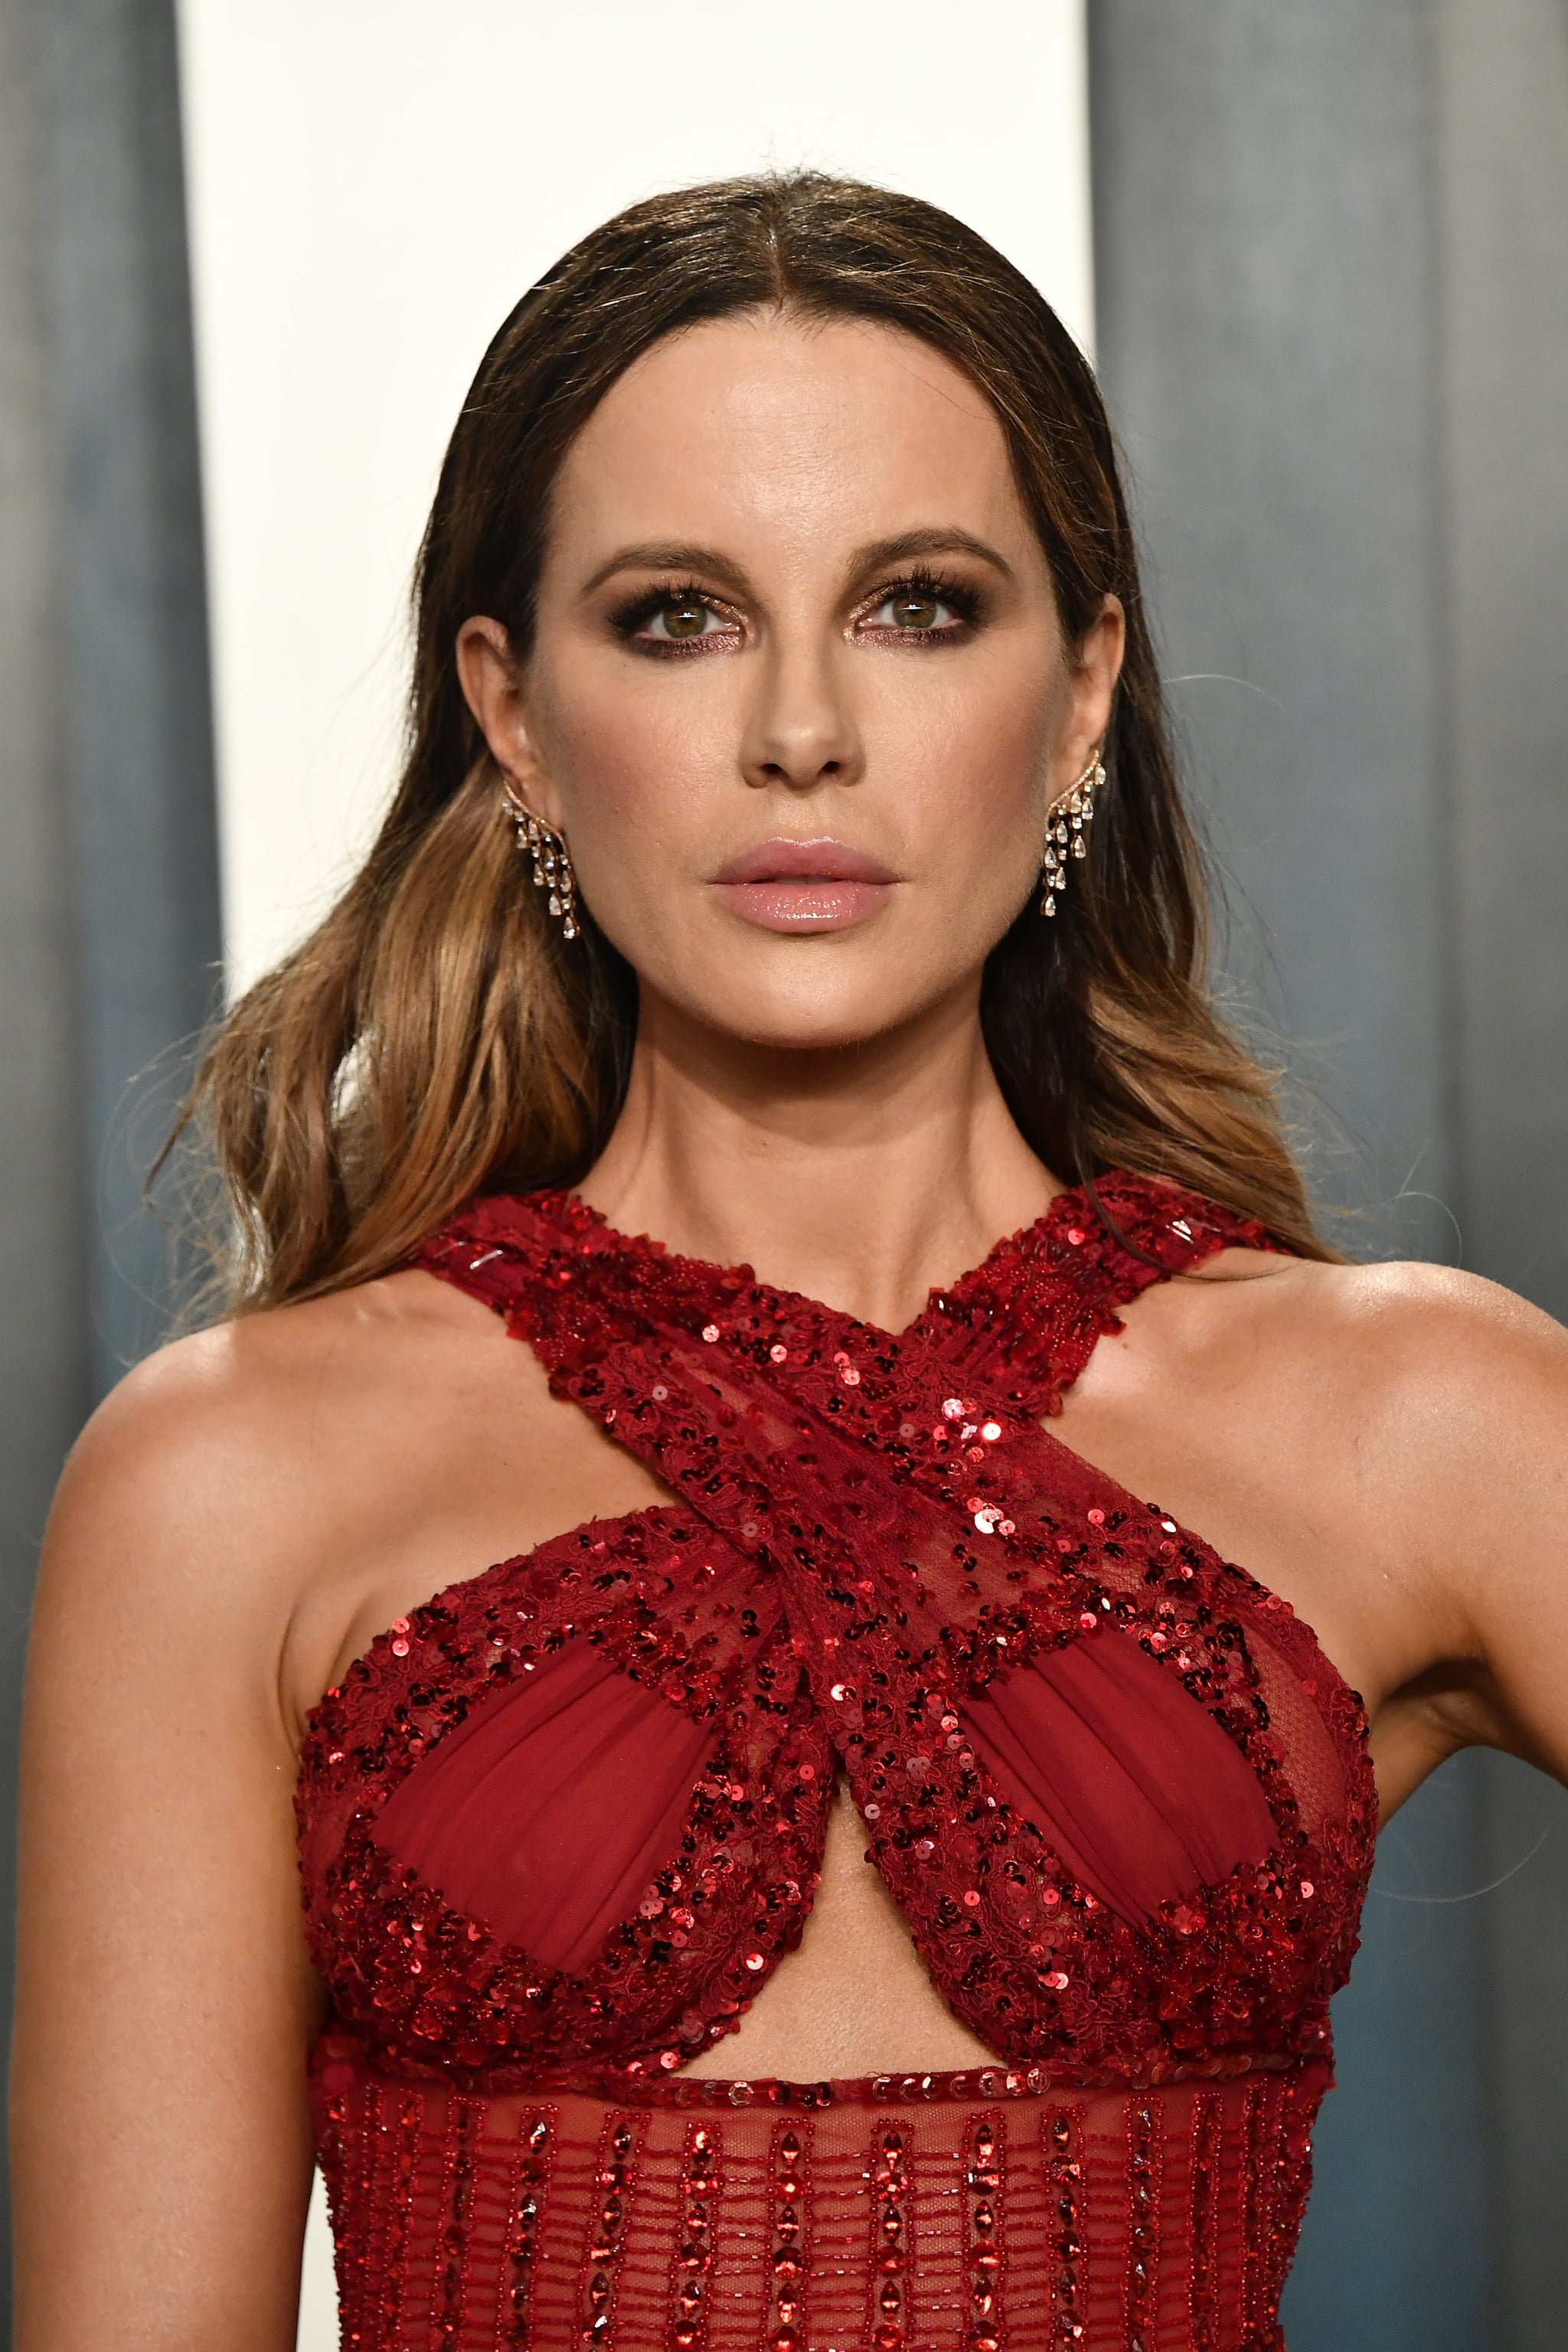 BEVERLY HILLS, CALIFORNIA - FEBRUARY 09: Kate Beckinsale attends the 2020 Vanity Fair Oscar Party hosted by Radhika Jones at Wallis Annenberg Centre for the Performing Arts on February 09, 2020 in Beverly Hills, California. (Photo by Frazer Harrison/Getty Images)